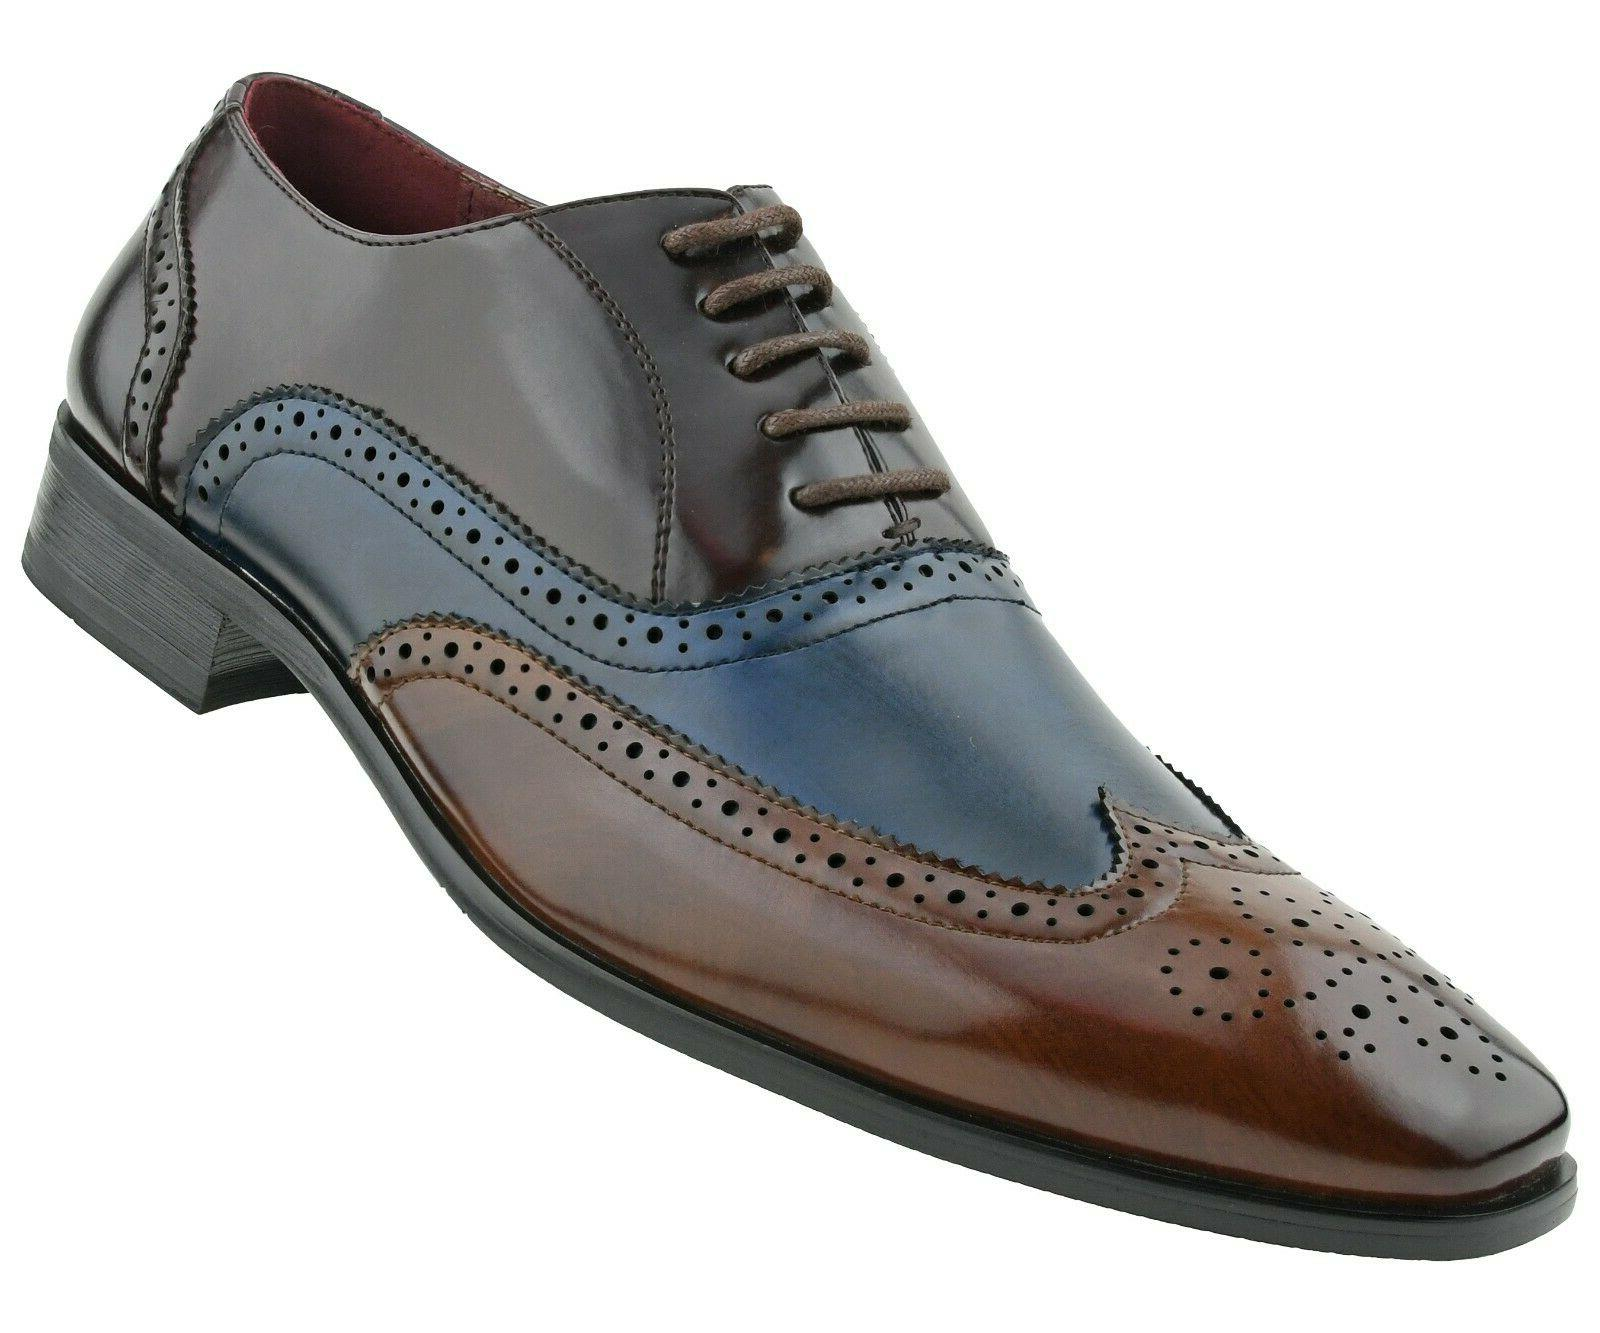 Men's Shoes Manmade Wing-Tip Shoes